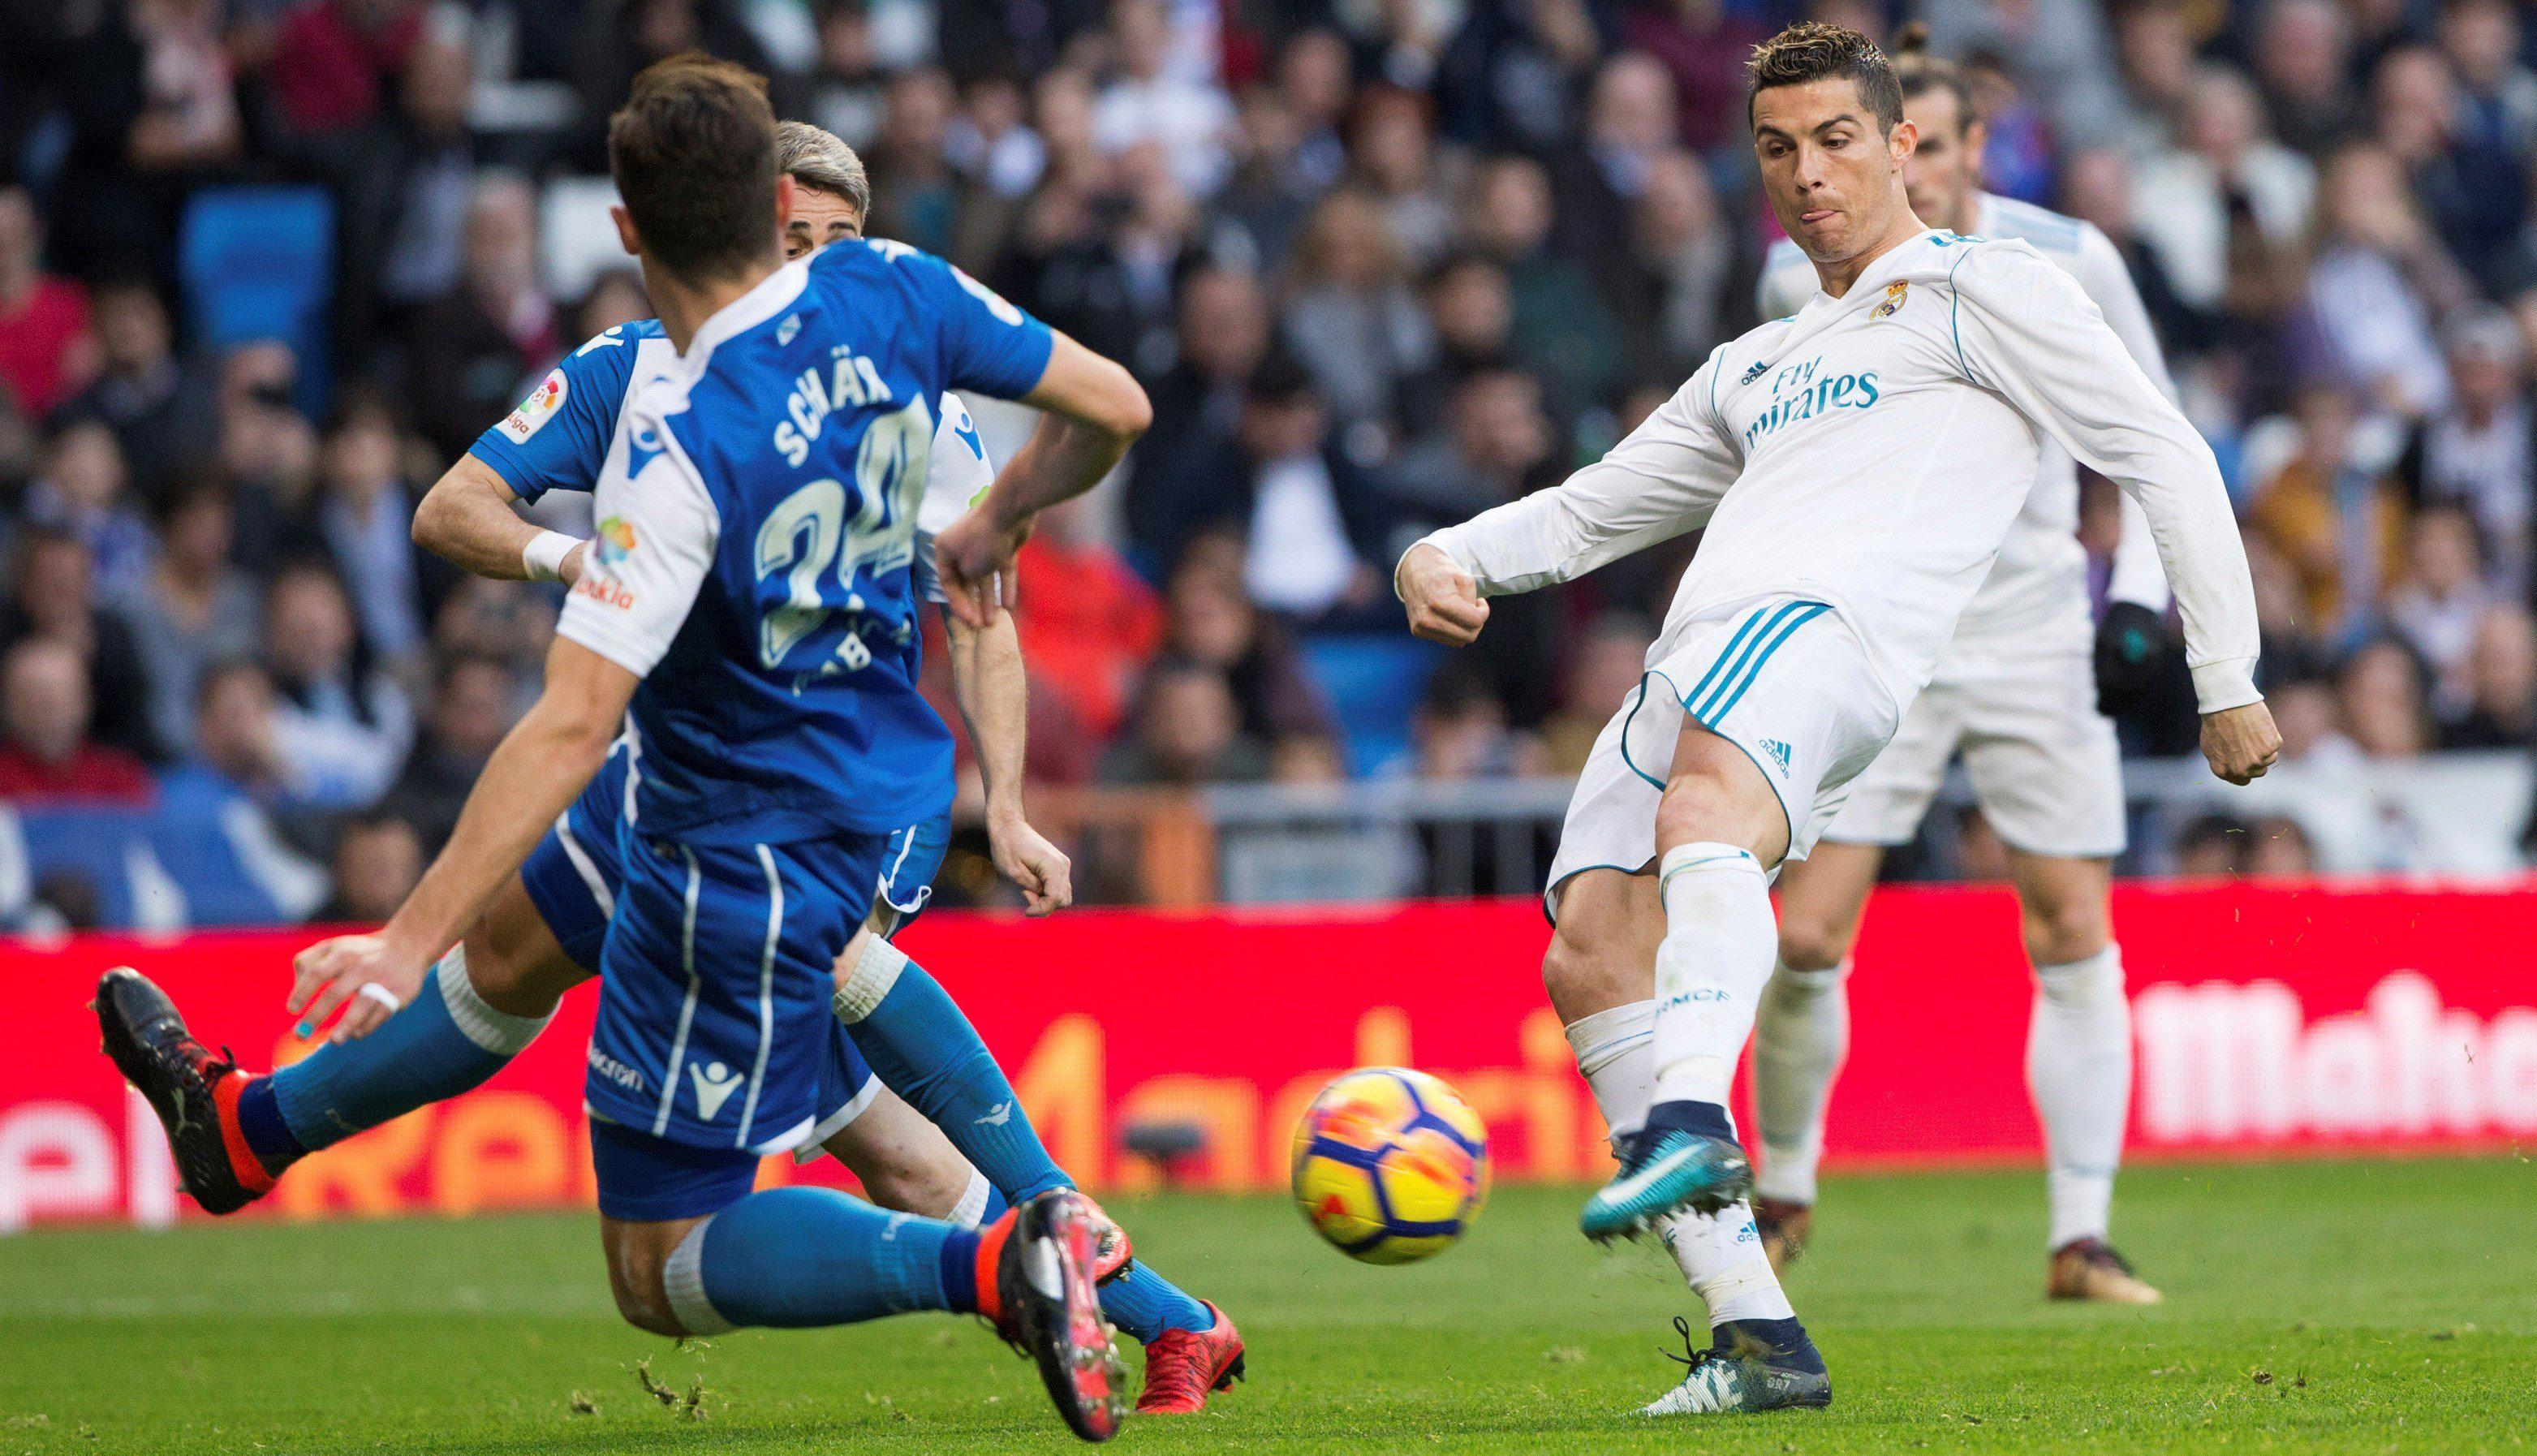 Real Madrid Vs Deportivo La Coruna